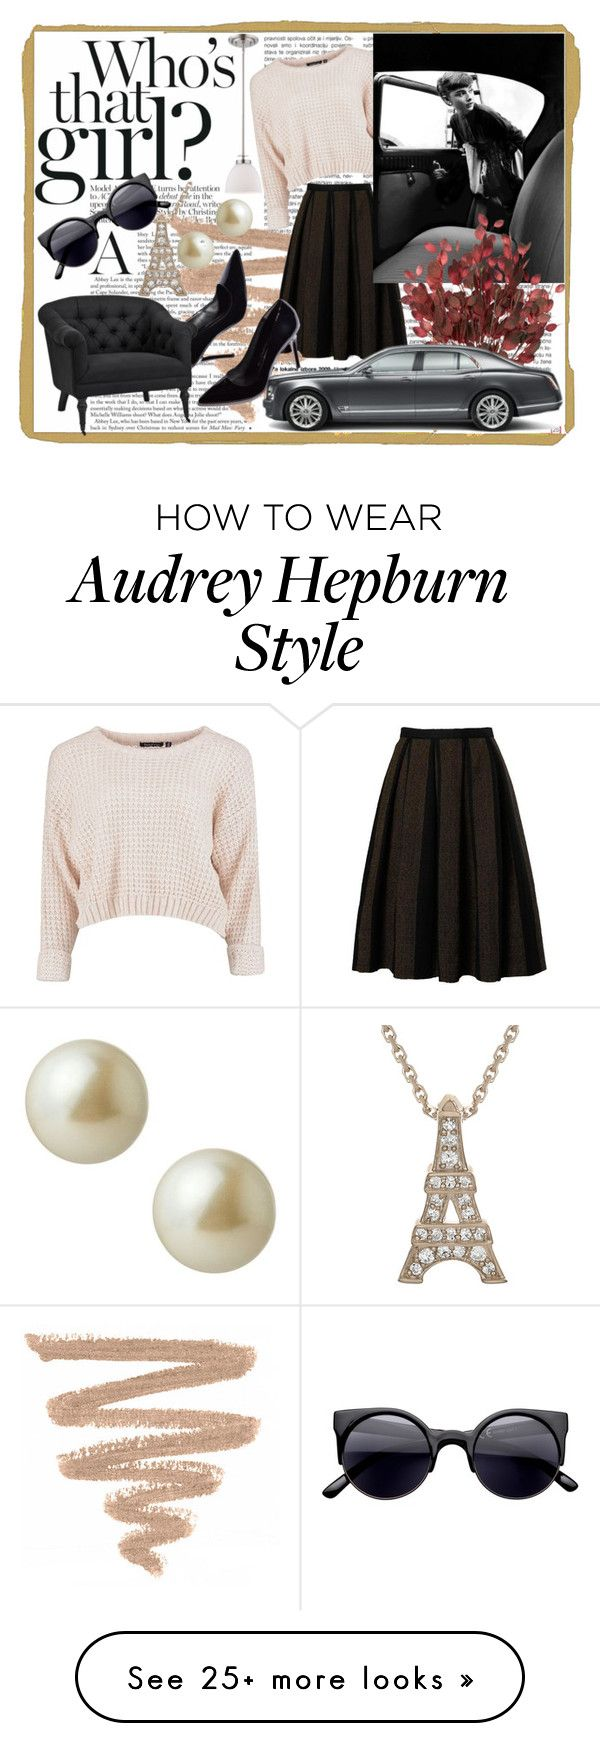 """""""Audrey H."""" by catgoddess on Polyvore featuring Bardot, Eichholtz, Carolee, audrey and hepburn"""